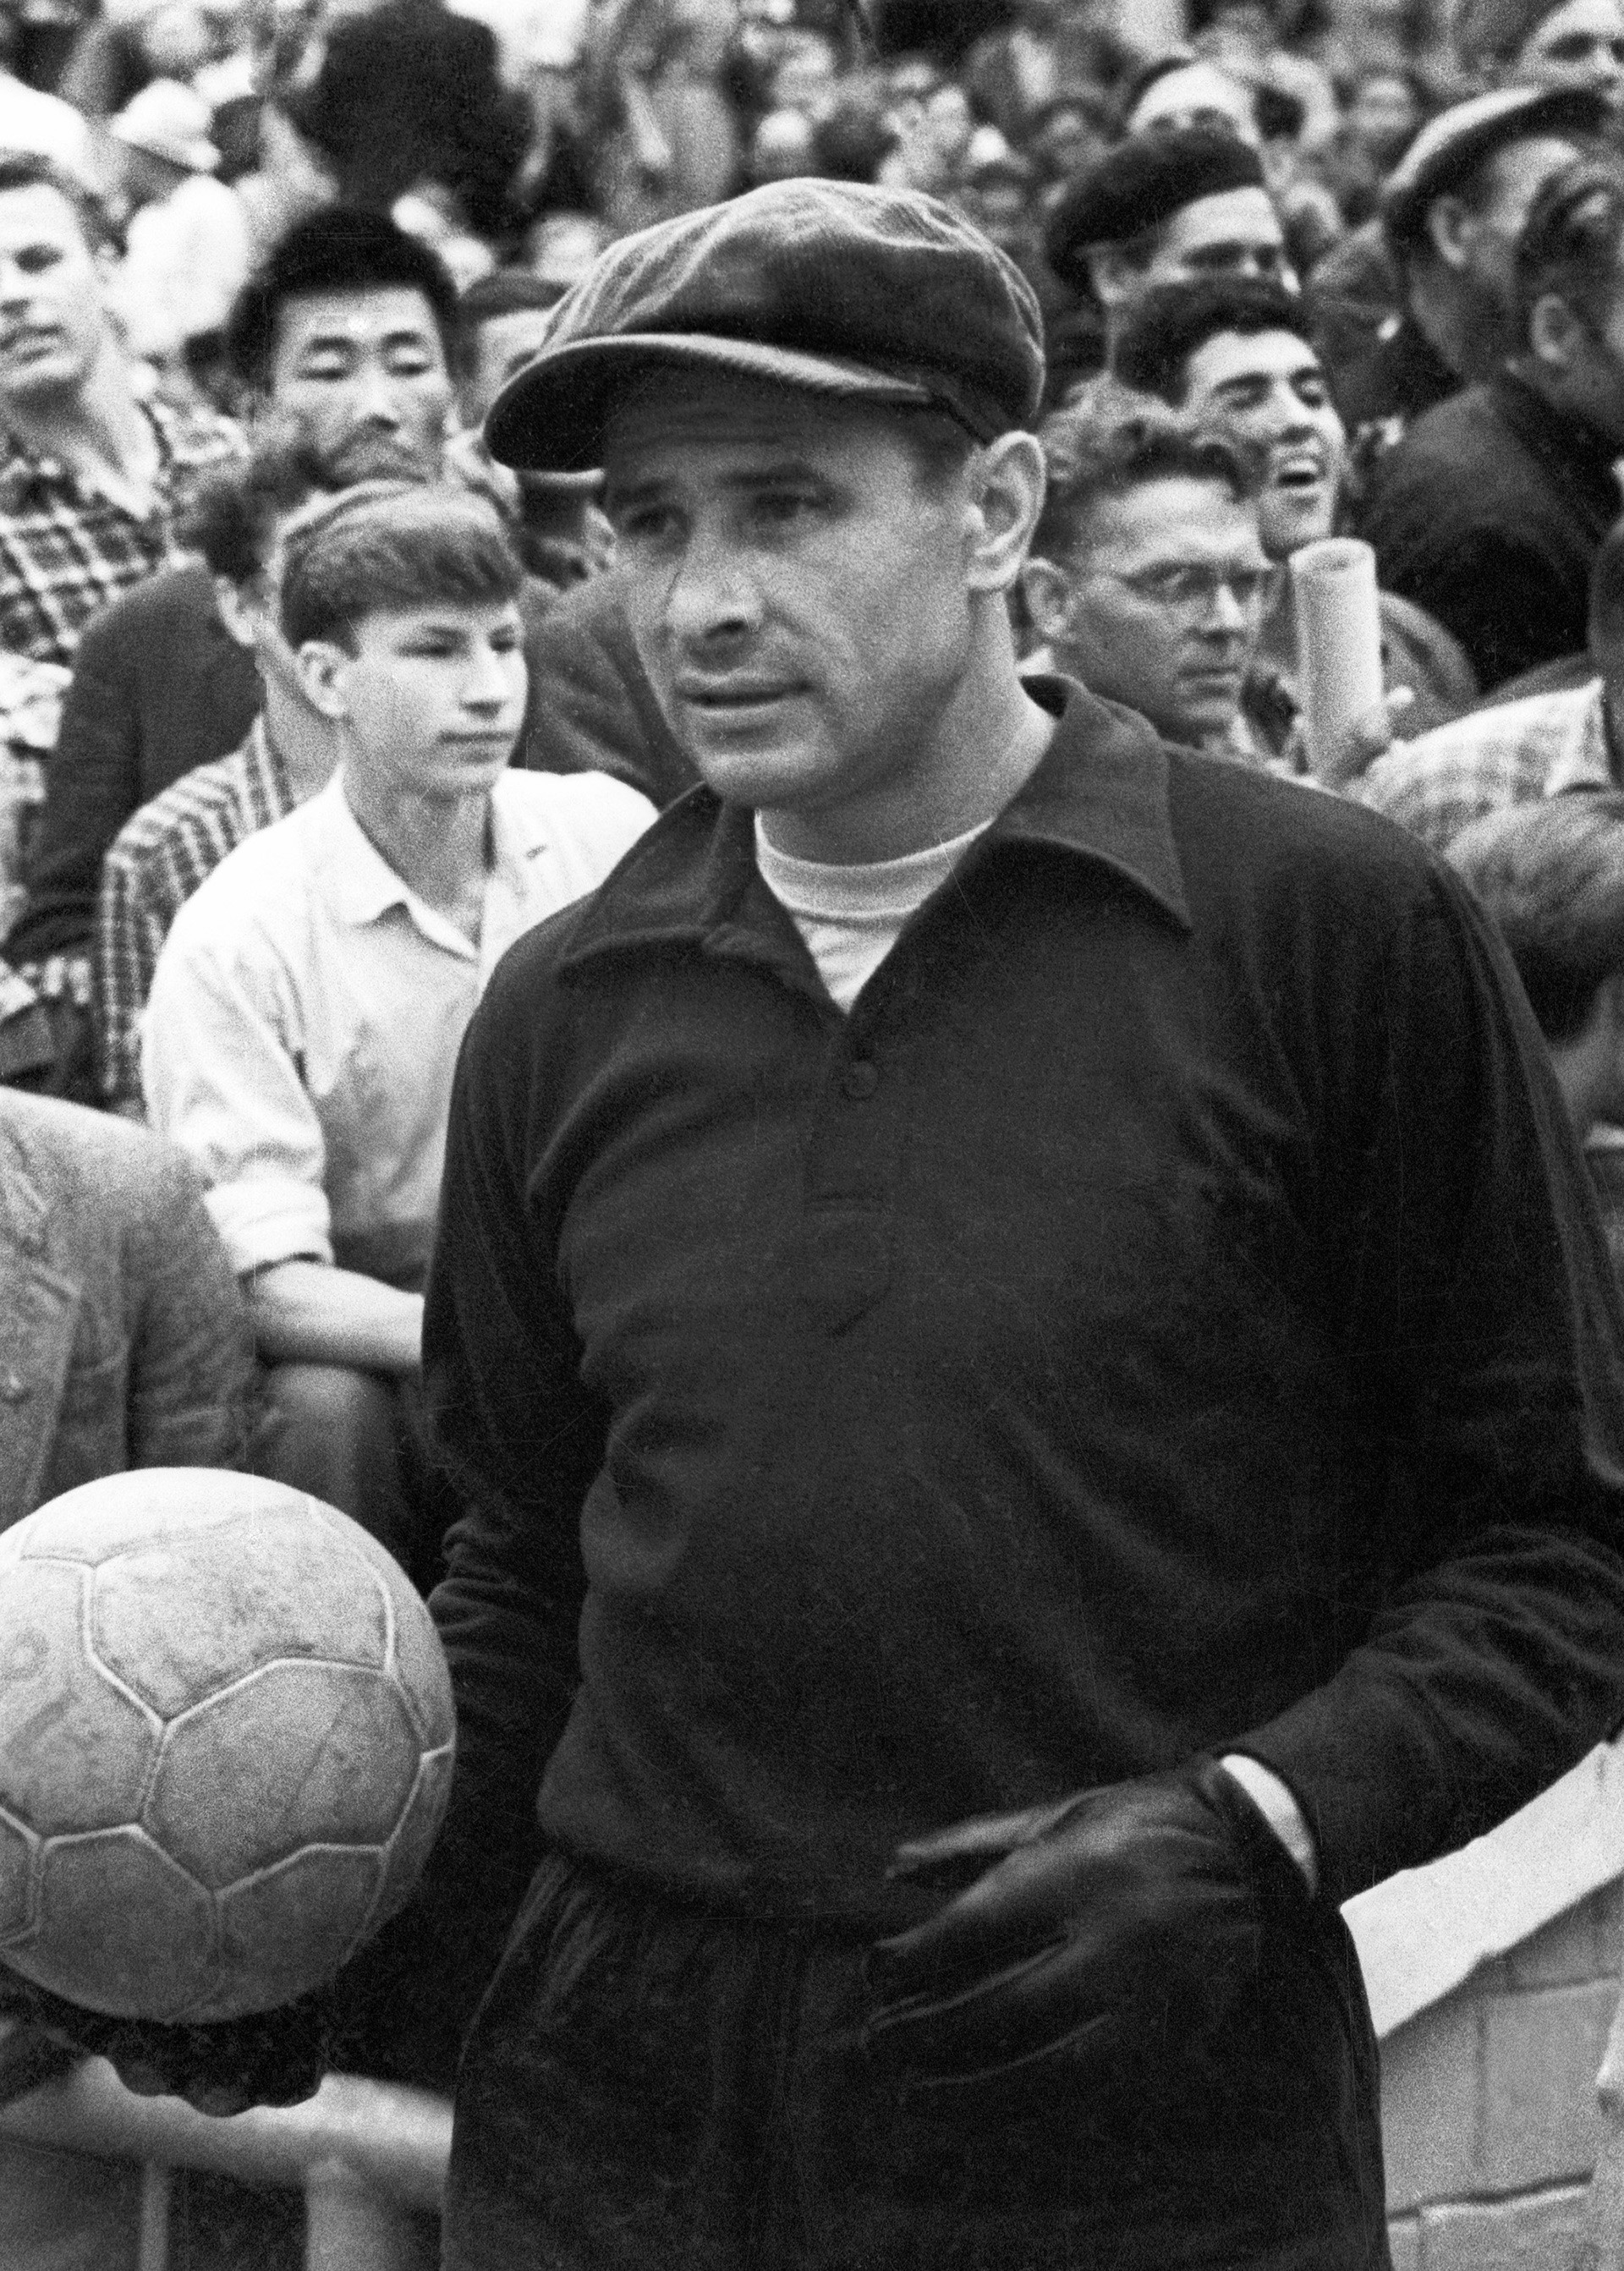 With his hat and dark outfit, Yashin was an extremely stylish player back in the Soviet  era.